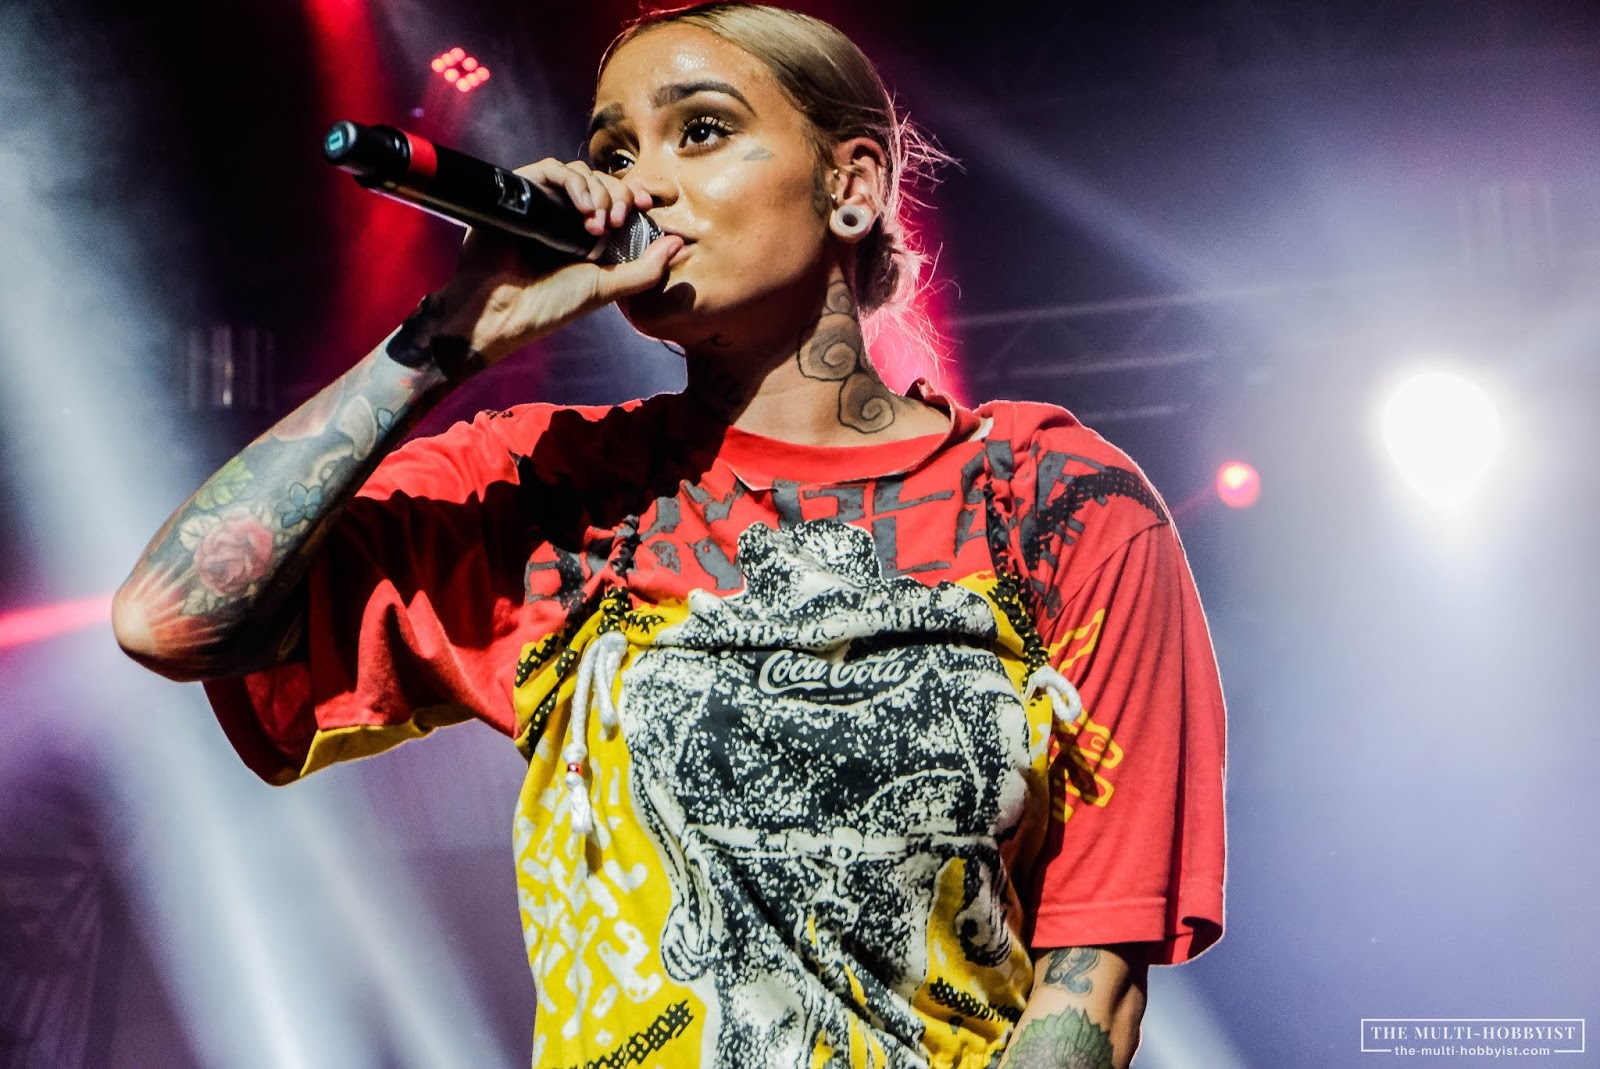 Kehlani Live in Manila 2018 featuring Jess Connelly at The Island PH